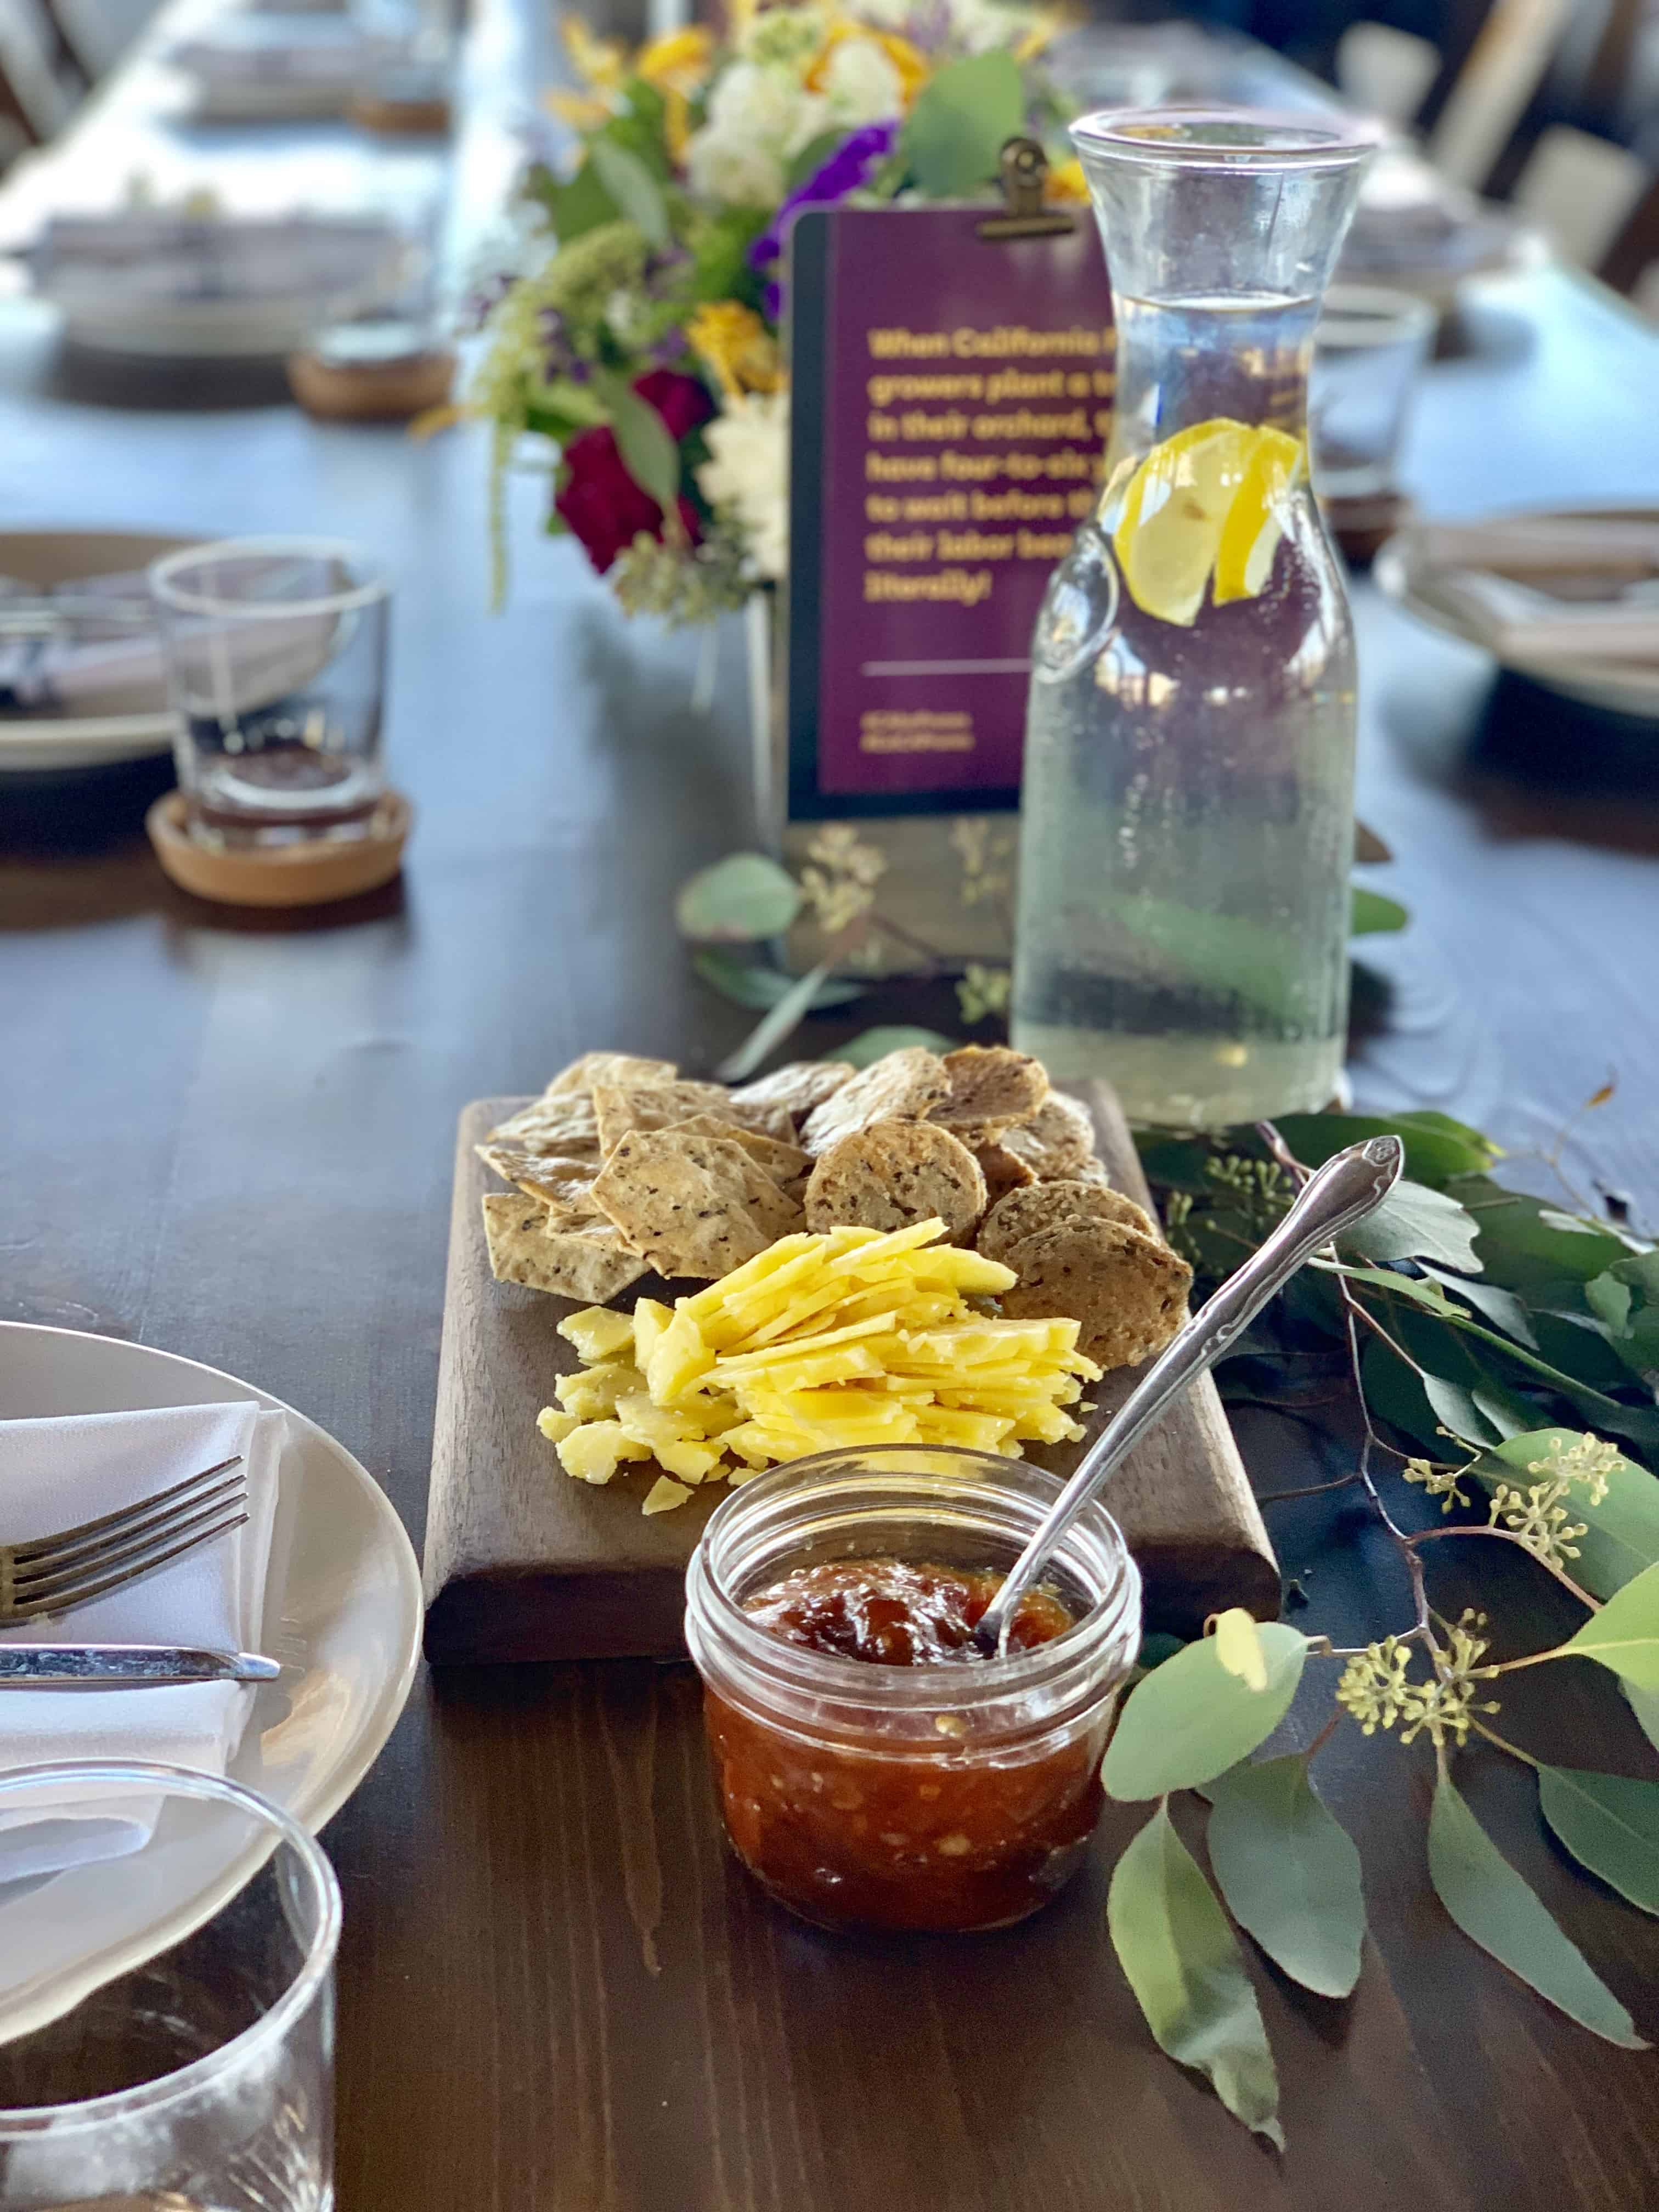 Beautiful tablescape with flowers in the background and cheese, crackers and jam in the foreground.